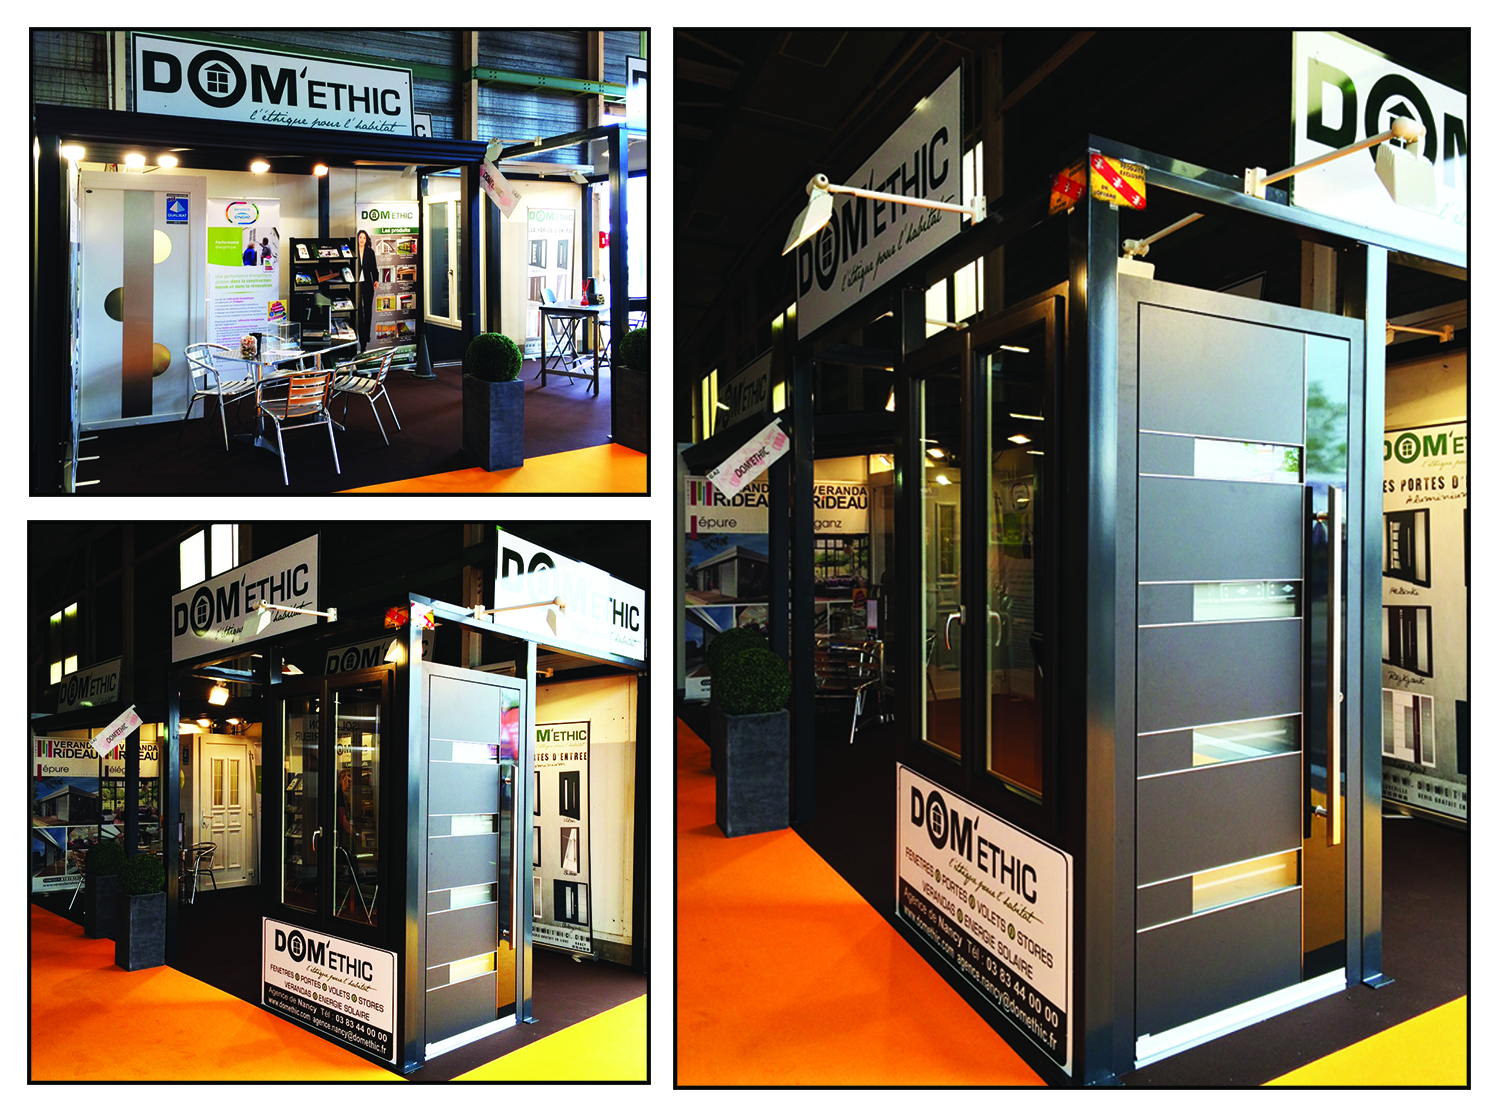 Stand Dom'ethic Foire Nancy 2016